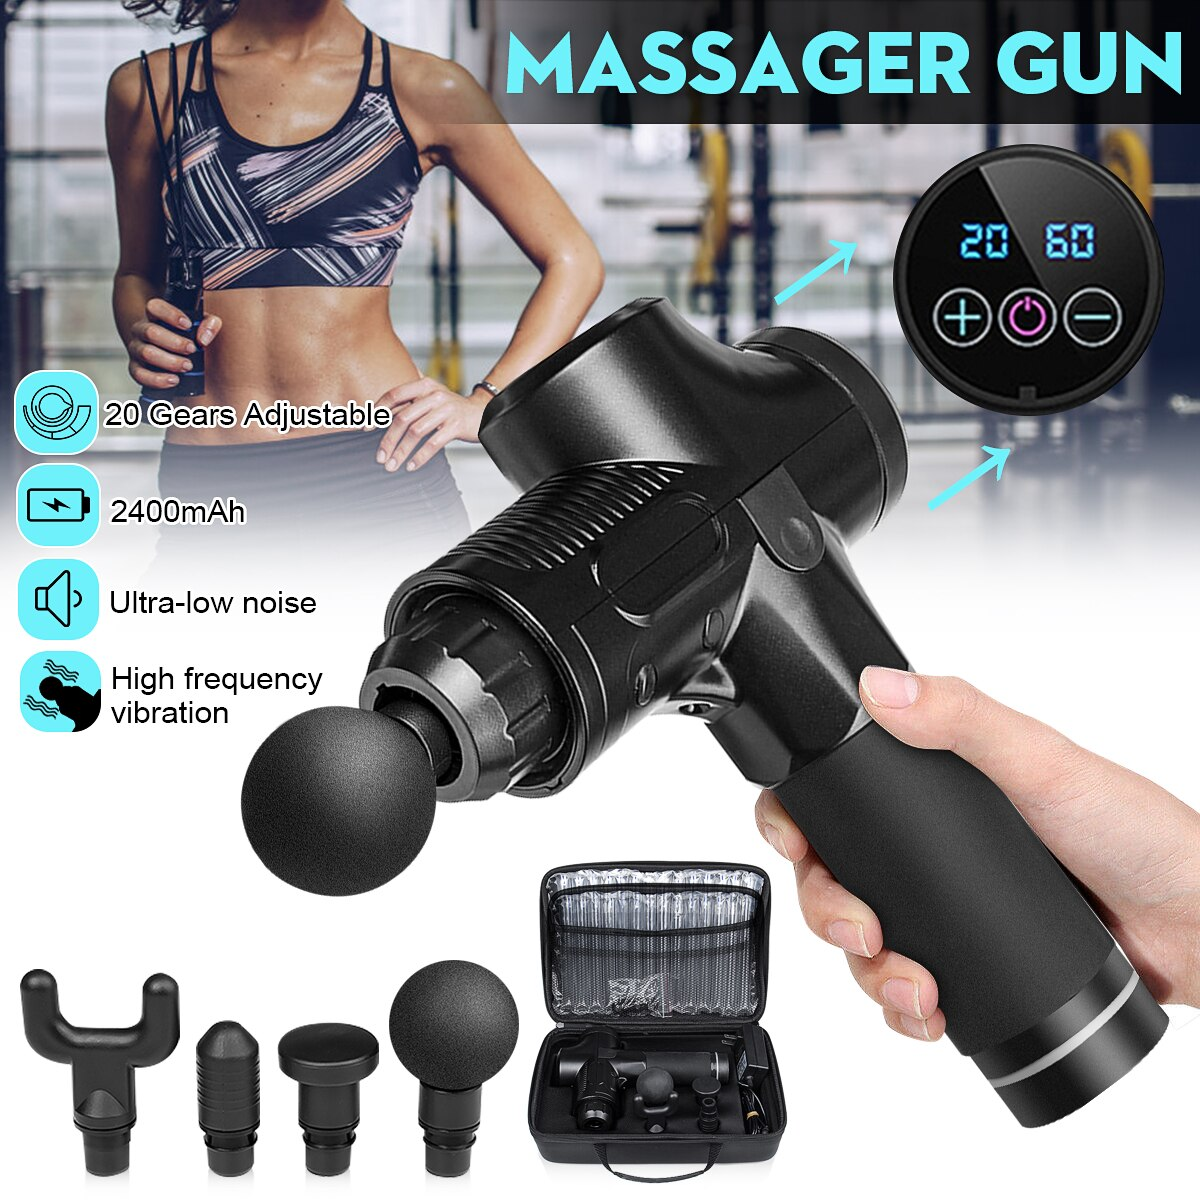 Therapy Tissue Massage Guns 20 Gear 24V Muscle Massager LED Home Sport Deep Tissue Pain Relief Body Relax Slim Shaping+Bag